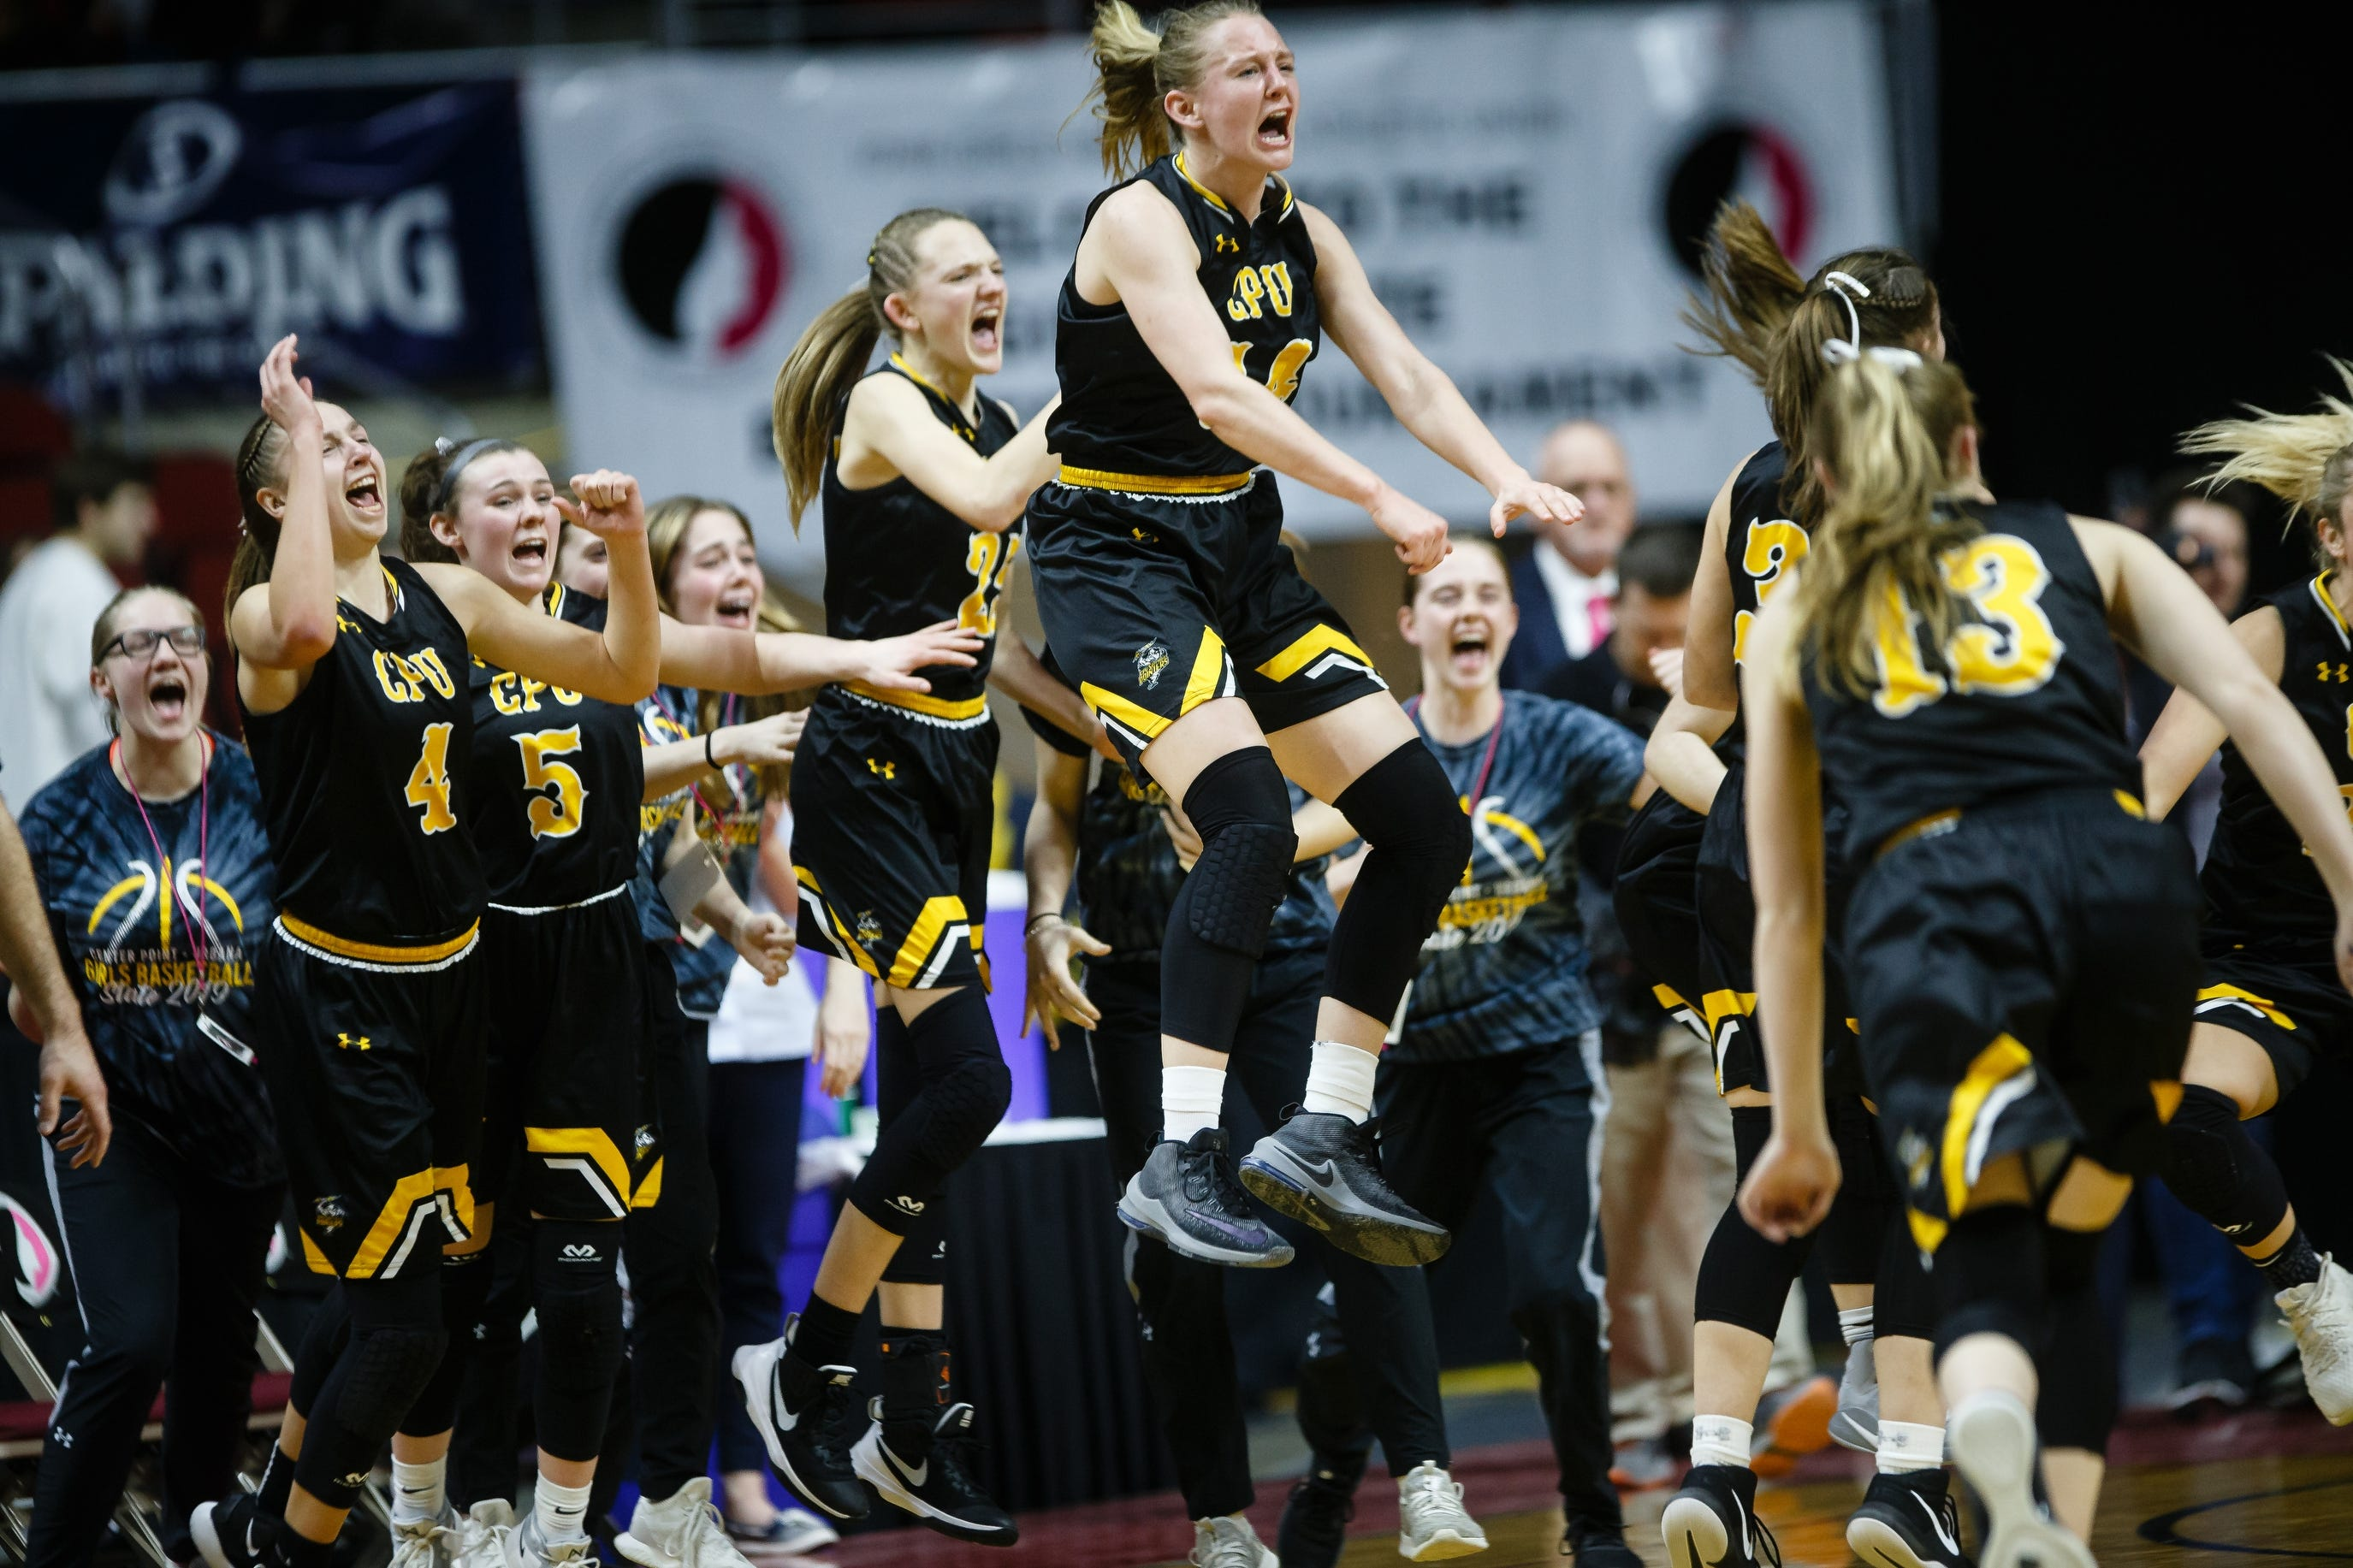 Center Point-Urbana celebrates as the final seconds wind down and they defeat North Polk during their 3A girls' state basketball championship game on Friday, March 1, 2019 in Des Moines.